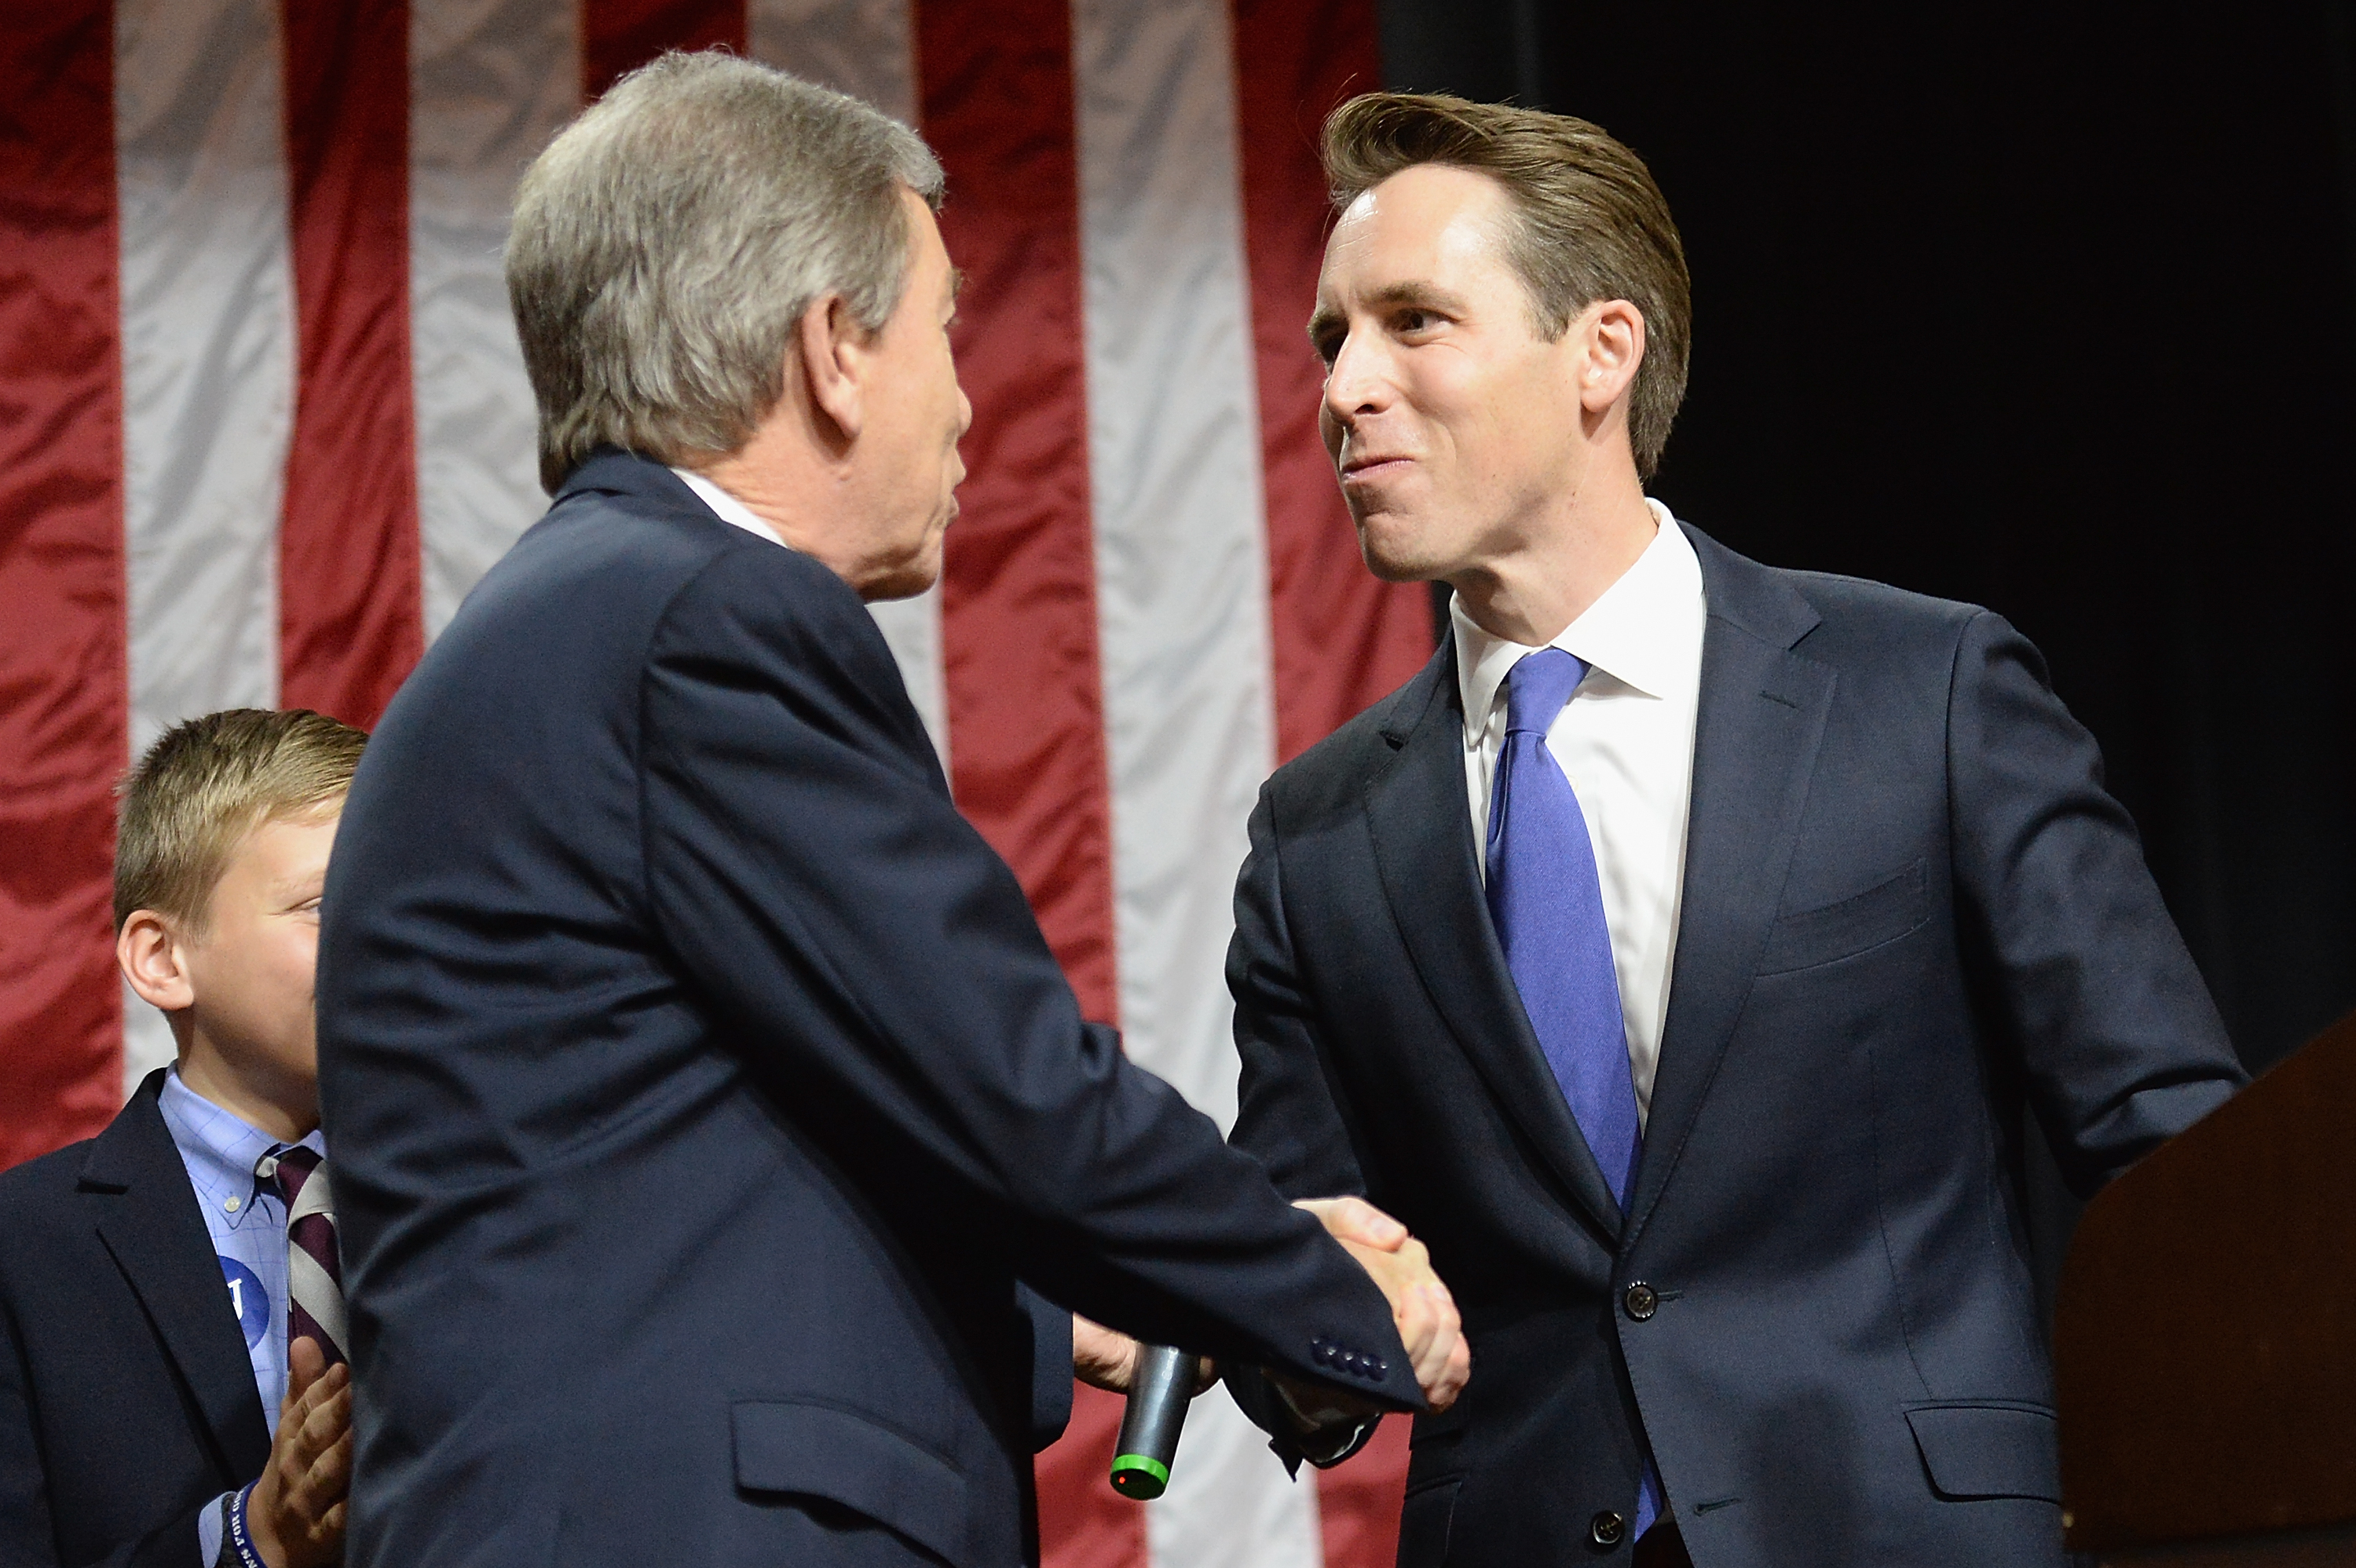 Some Missouri Republicans are urging newly elected Attorney General Josh Hawley, right, to run for Senate. Attorneys general are looking at potential Senate bids in three tossup states.(Michael B. Thomas/Getty Images)